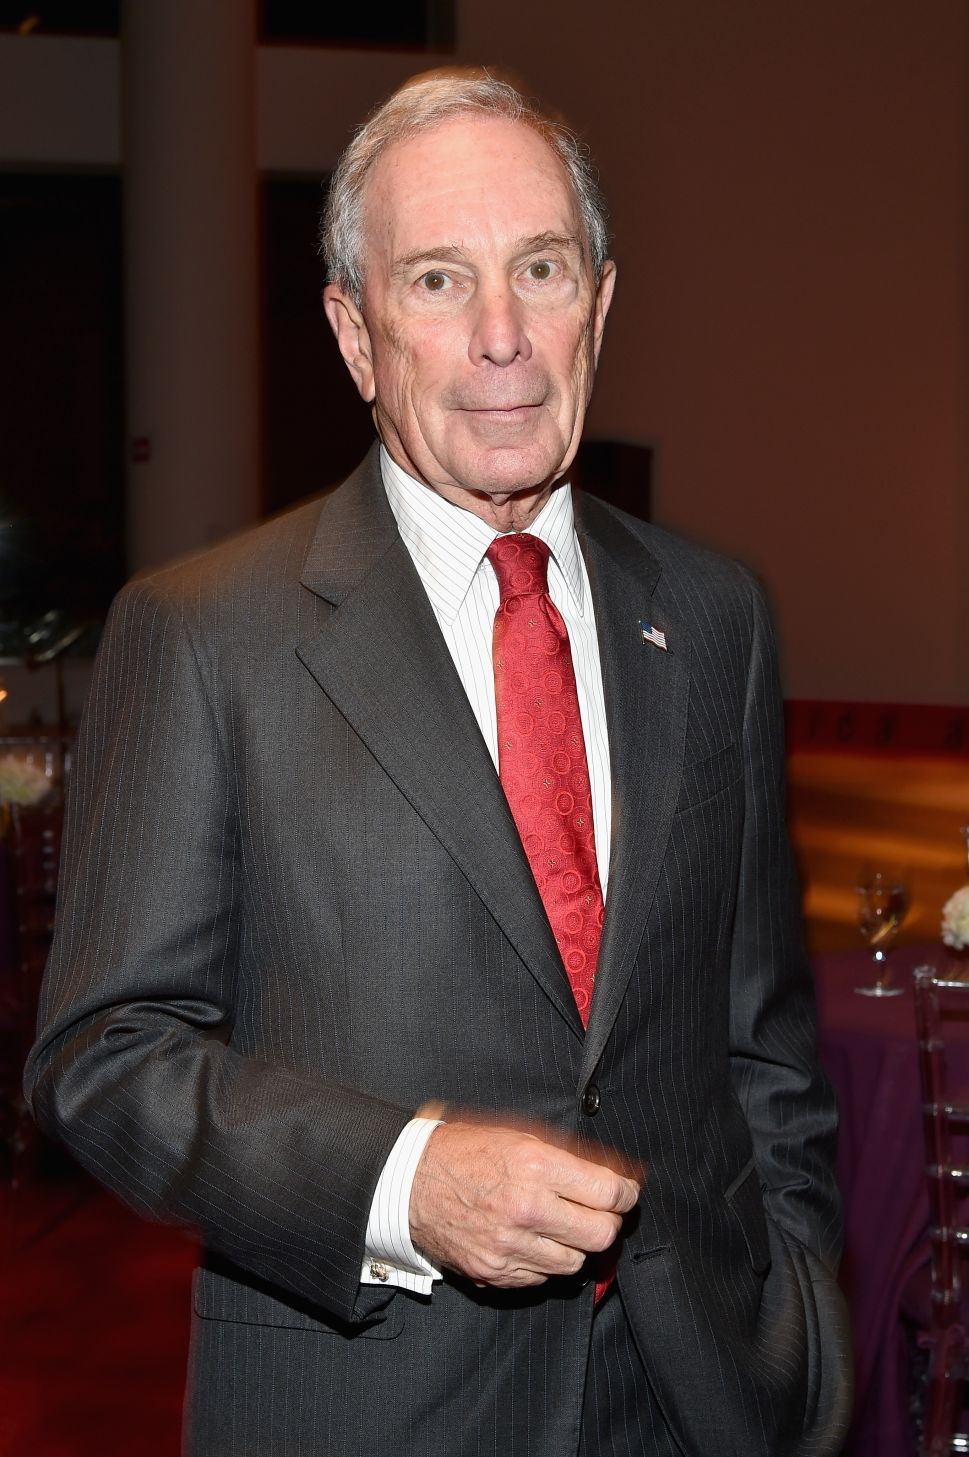 Mayor Michael Bloomberg (Photo by Mike Coppola/Getty Images for Jazz at Lincoln Center).